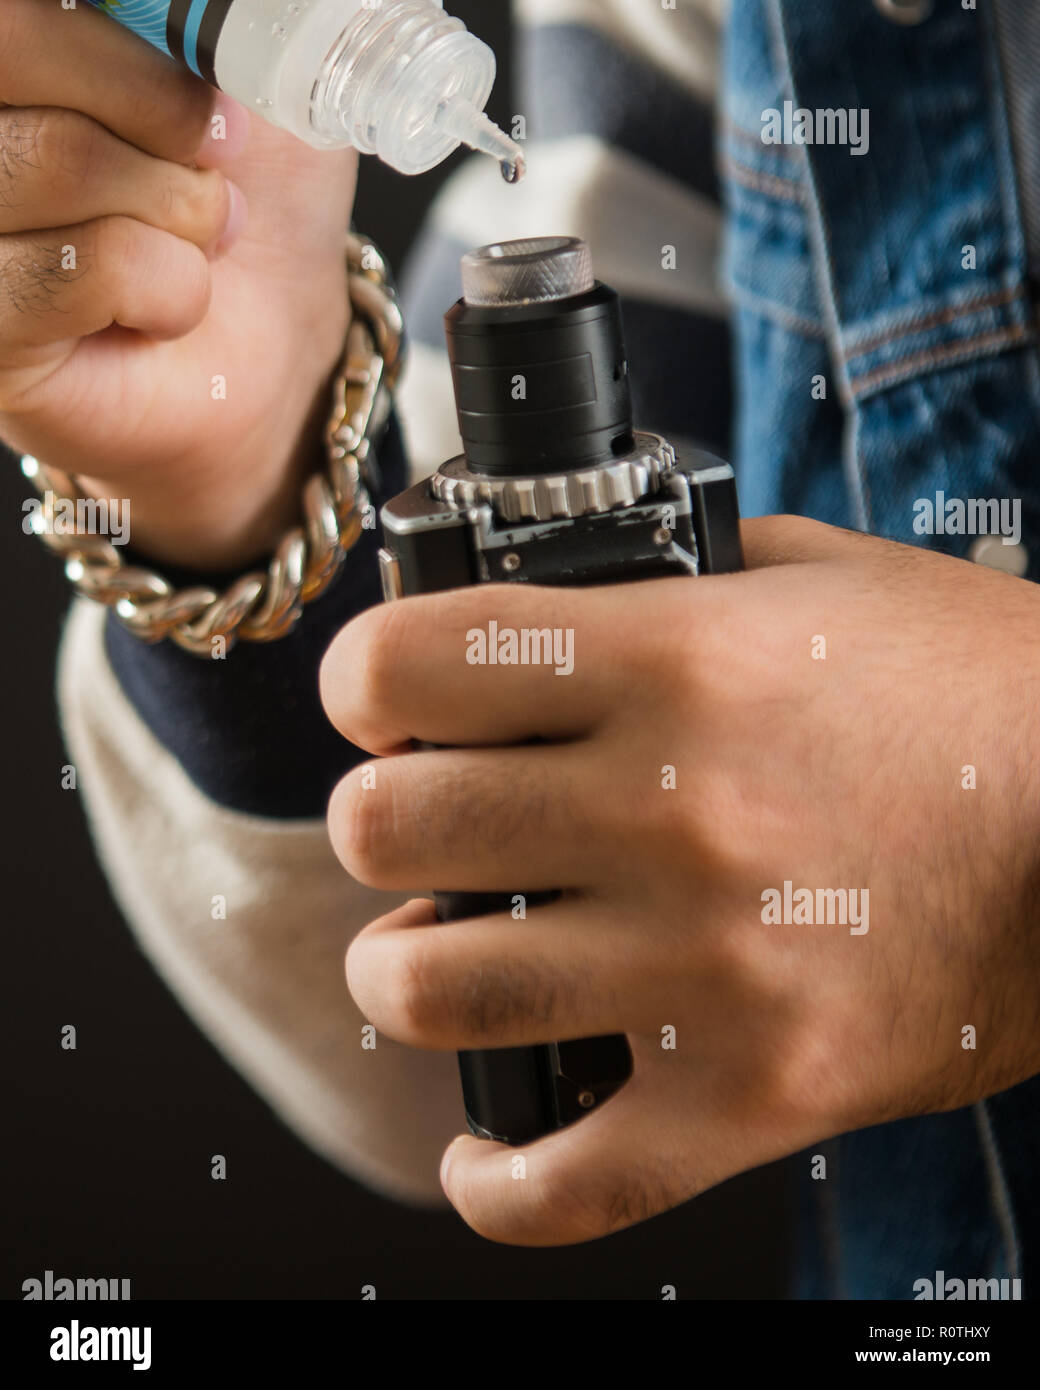 Man dripping his vape device, RDA or e-cigarette, close up, selective focus - Stock Image